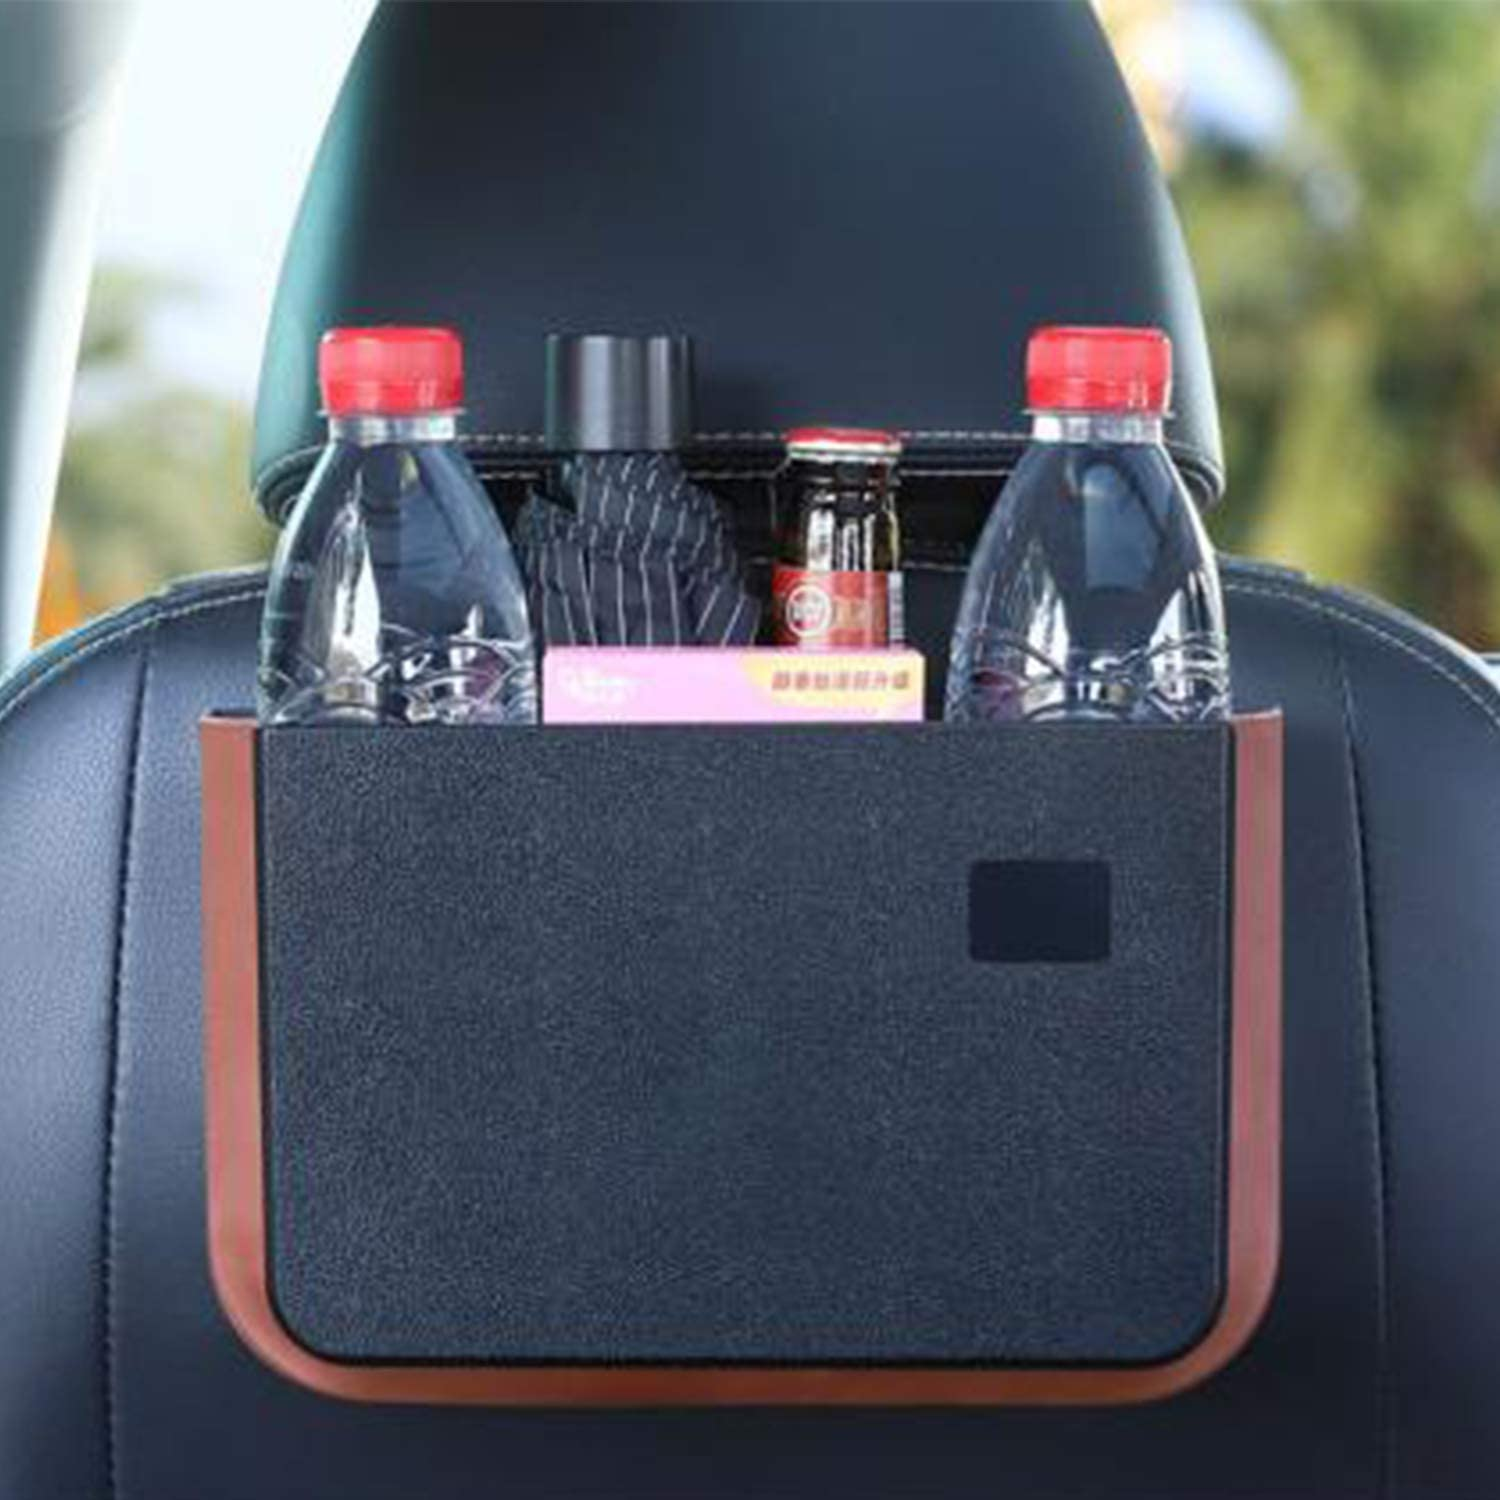 Kowenz CAR Headrest Organizer for Back Seat, Use for Cup Holder, Food Tray and Car Trash bin, Push in and Out Function for Space Saving, Universal Fitment SUV, Sedan, Car, Hatchback